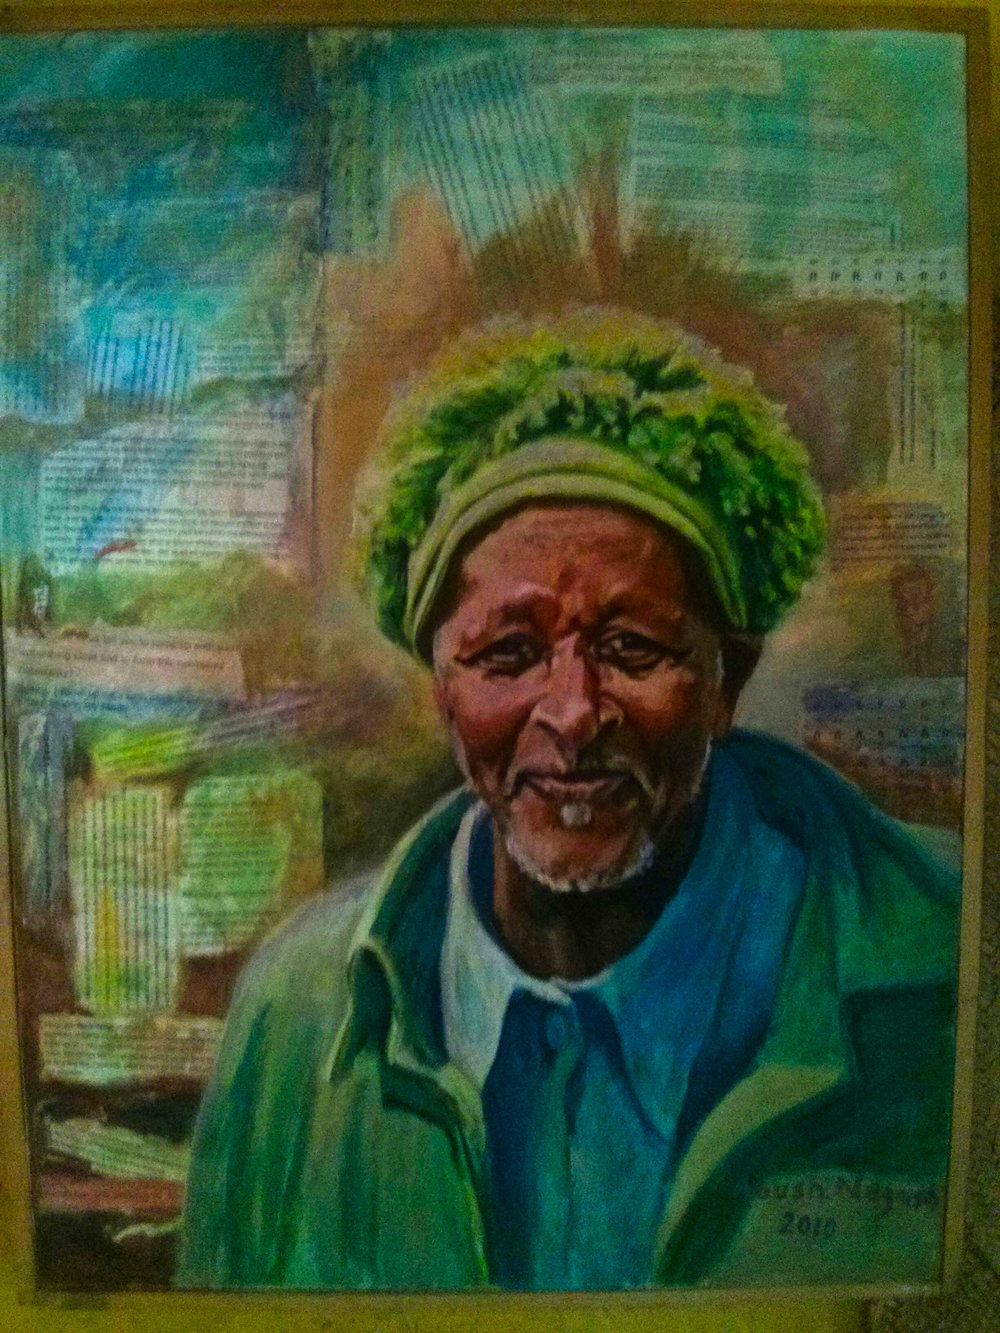 The founder of Awra Amba -Zumra Nuru as depicted on the wall of the community museum... (Photo Credit: Nick Colwill)